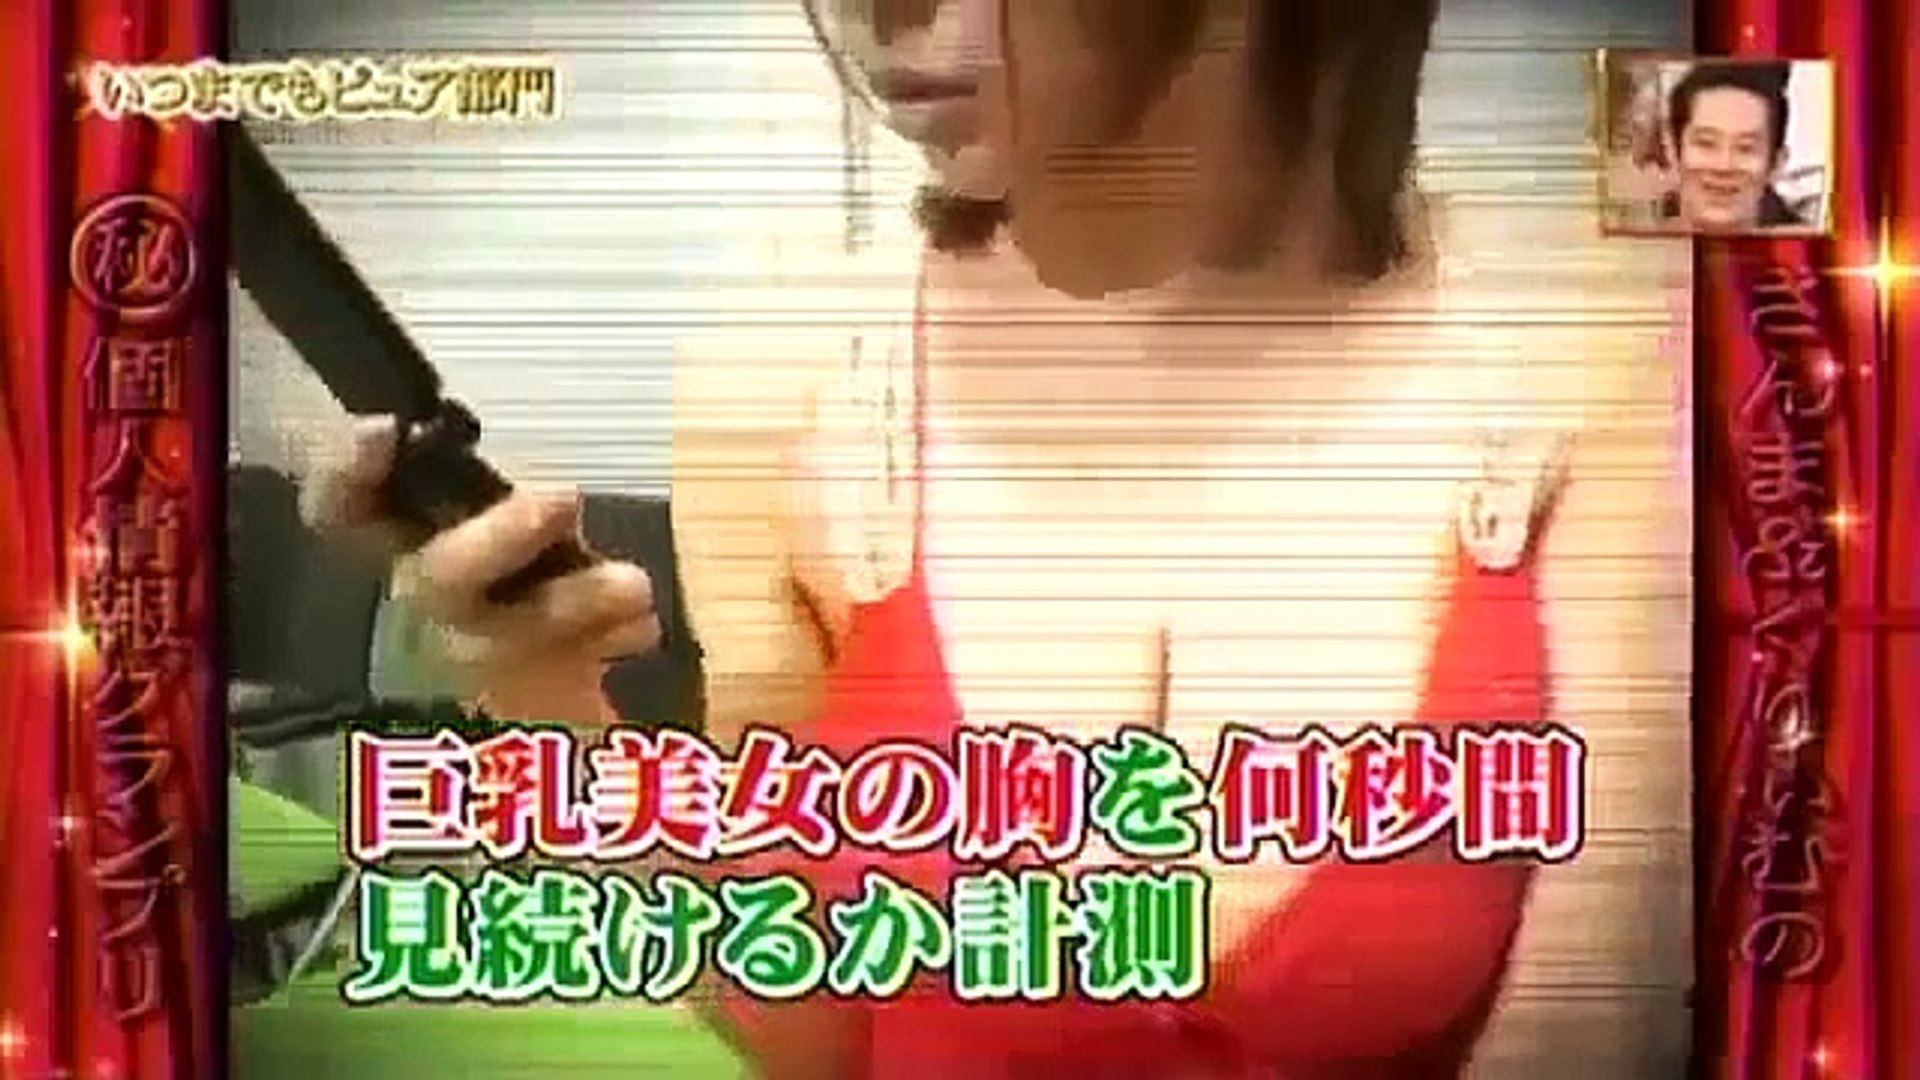 Sexy Funny Video - Girl with Huge Breast Prank - Hilarious Japanese Sexy Game Show Part 5